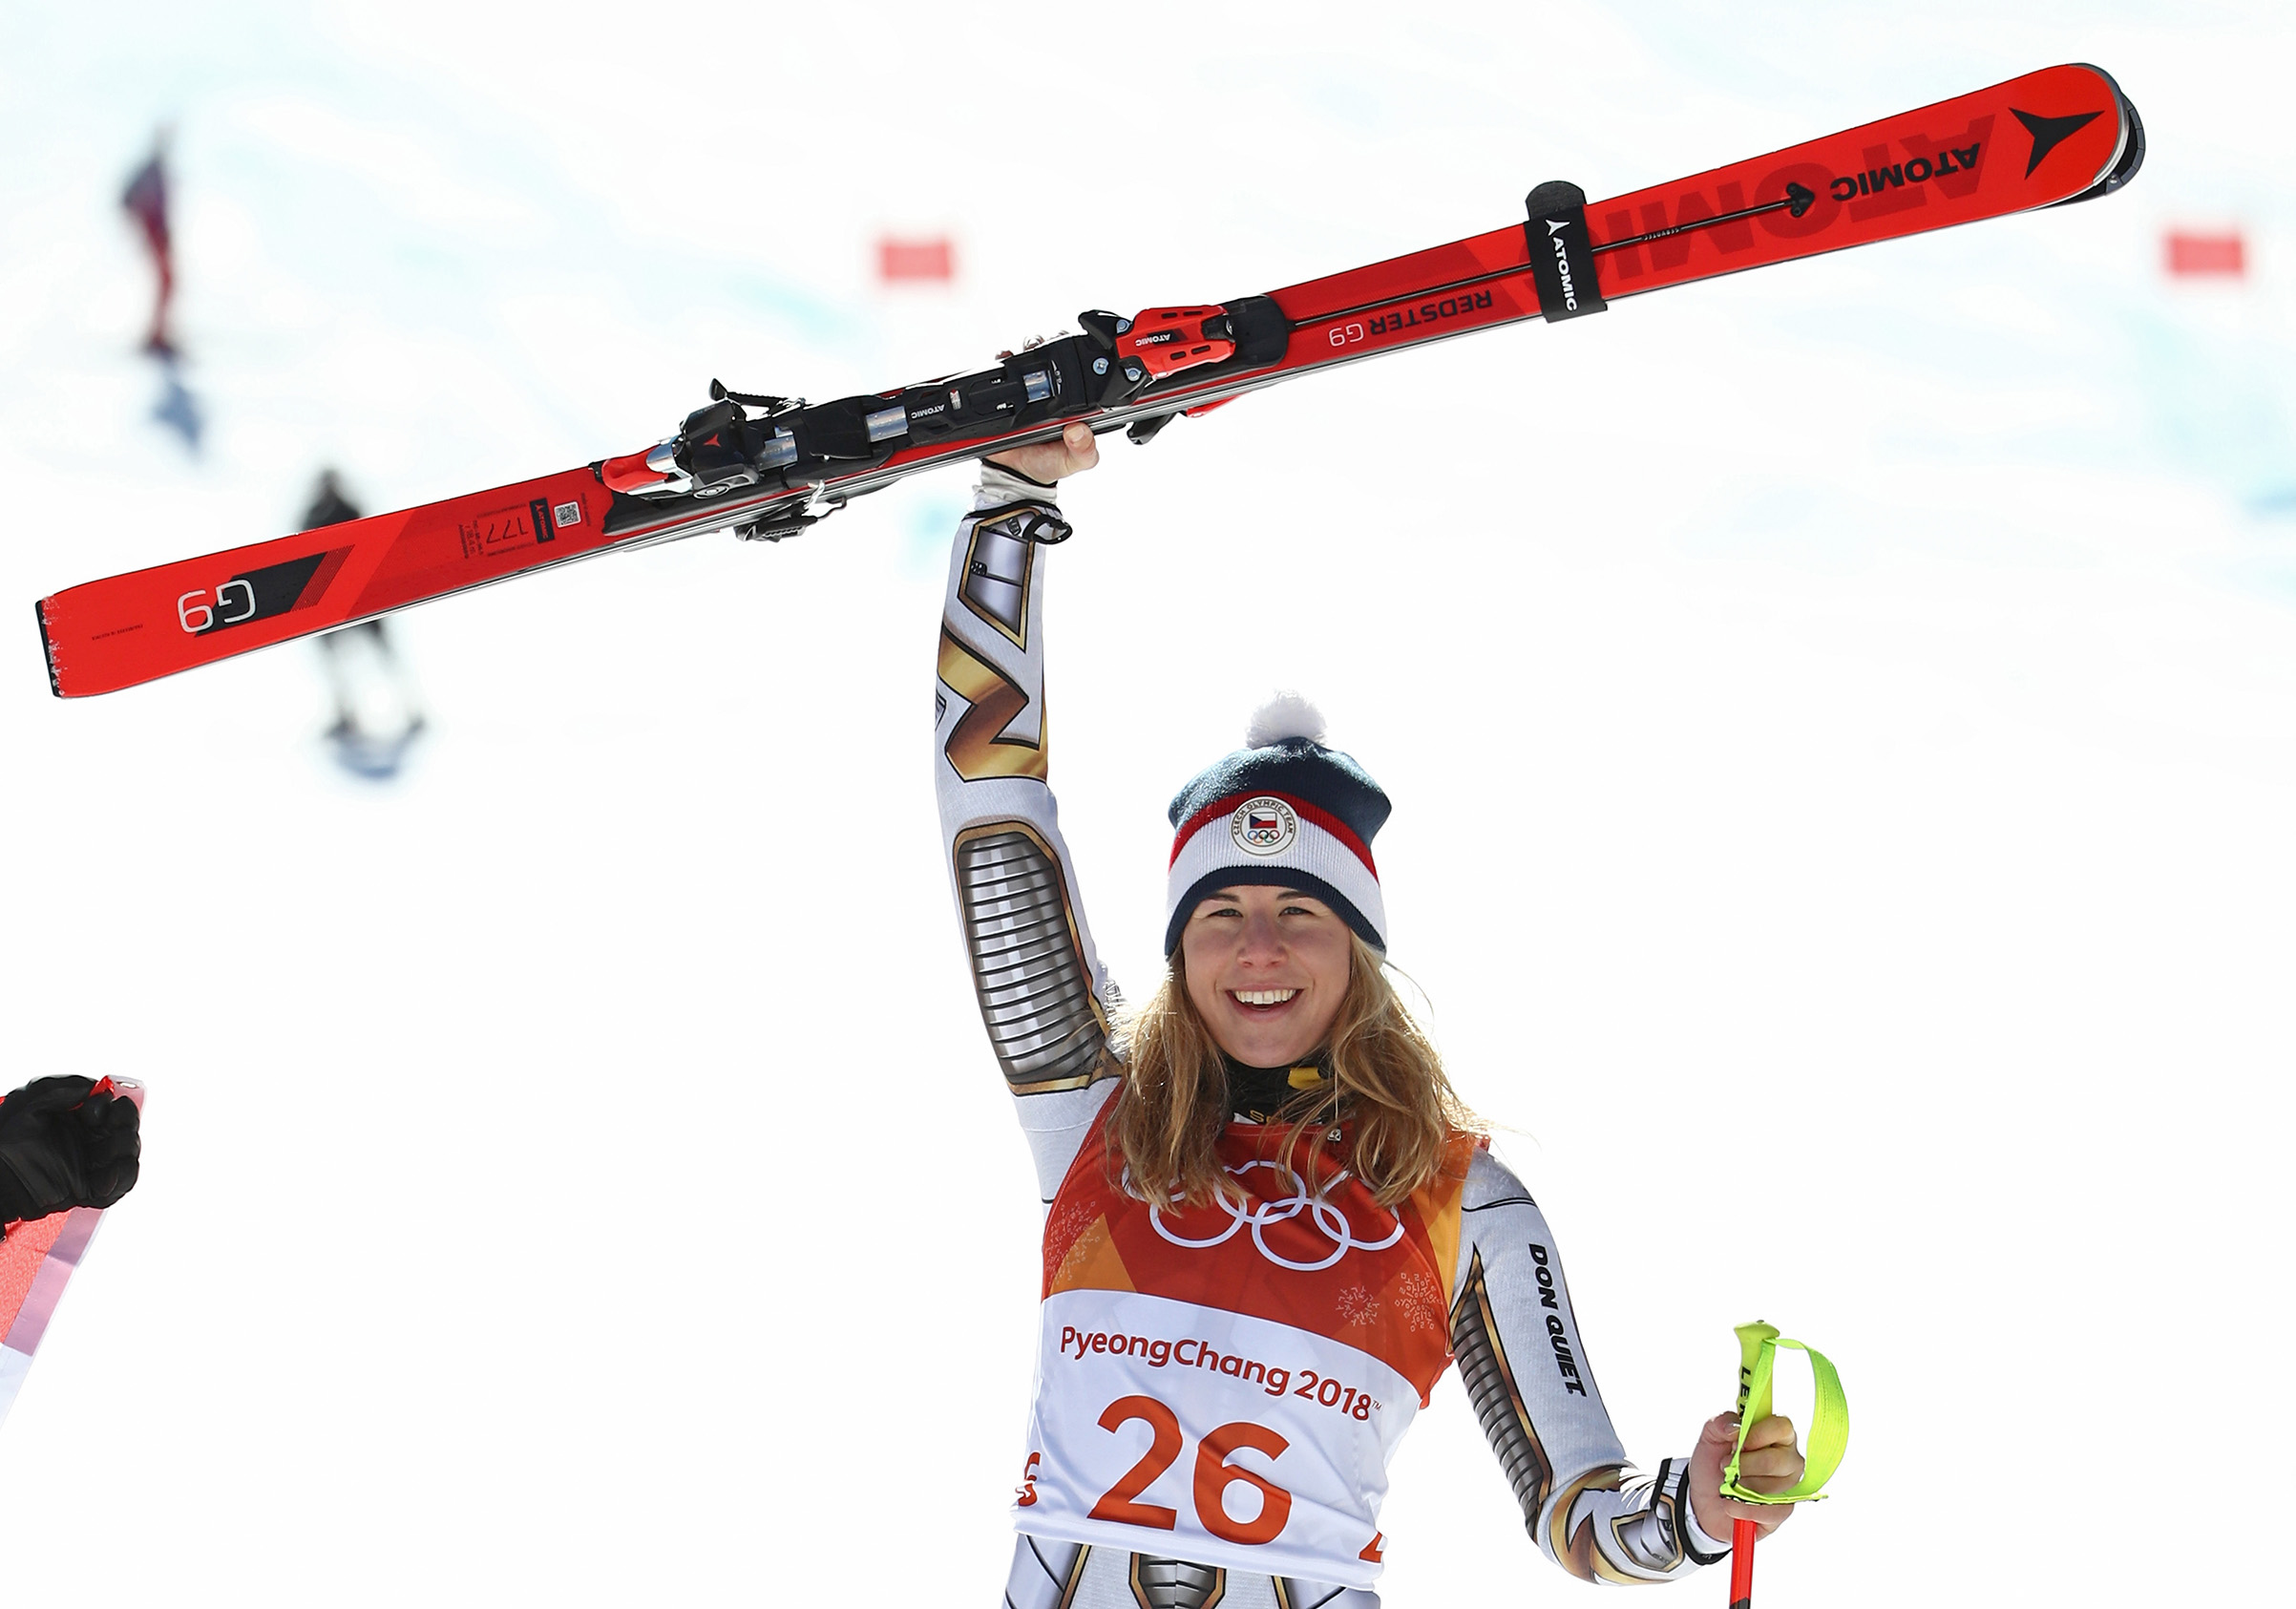 Gold medallist Ester Ledecka of the Czech Republic celebrates during the victory ceremony for the Alpine Skiing Ladies Super-G at the PyeongChang 2018 Winter Olympic Games on Feb. 17, 2018.